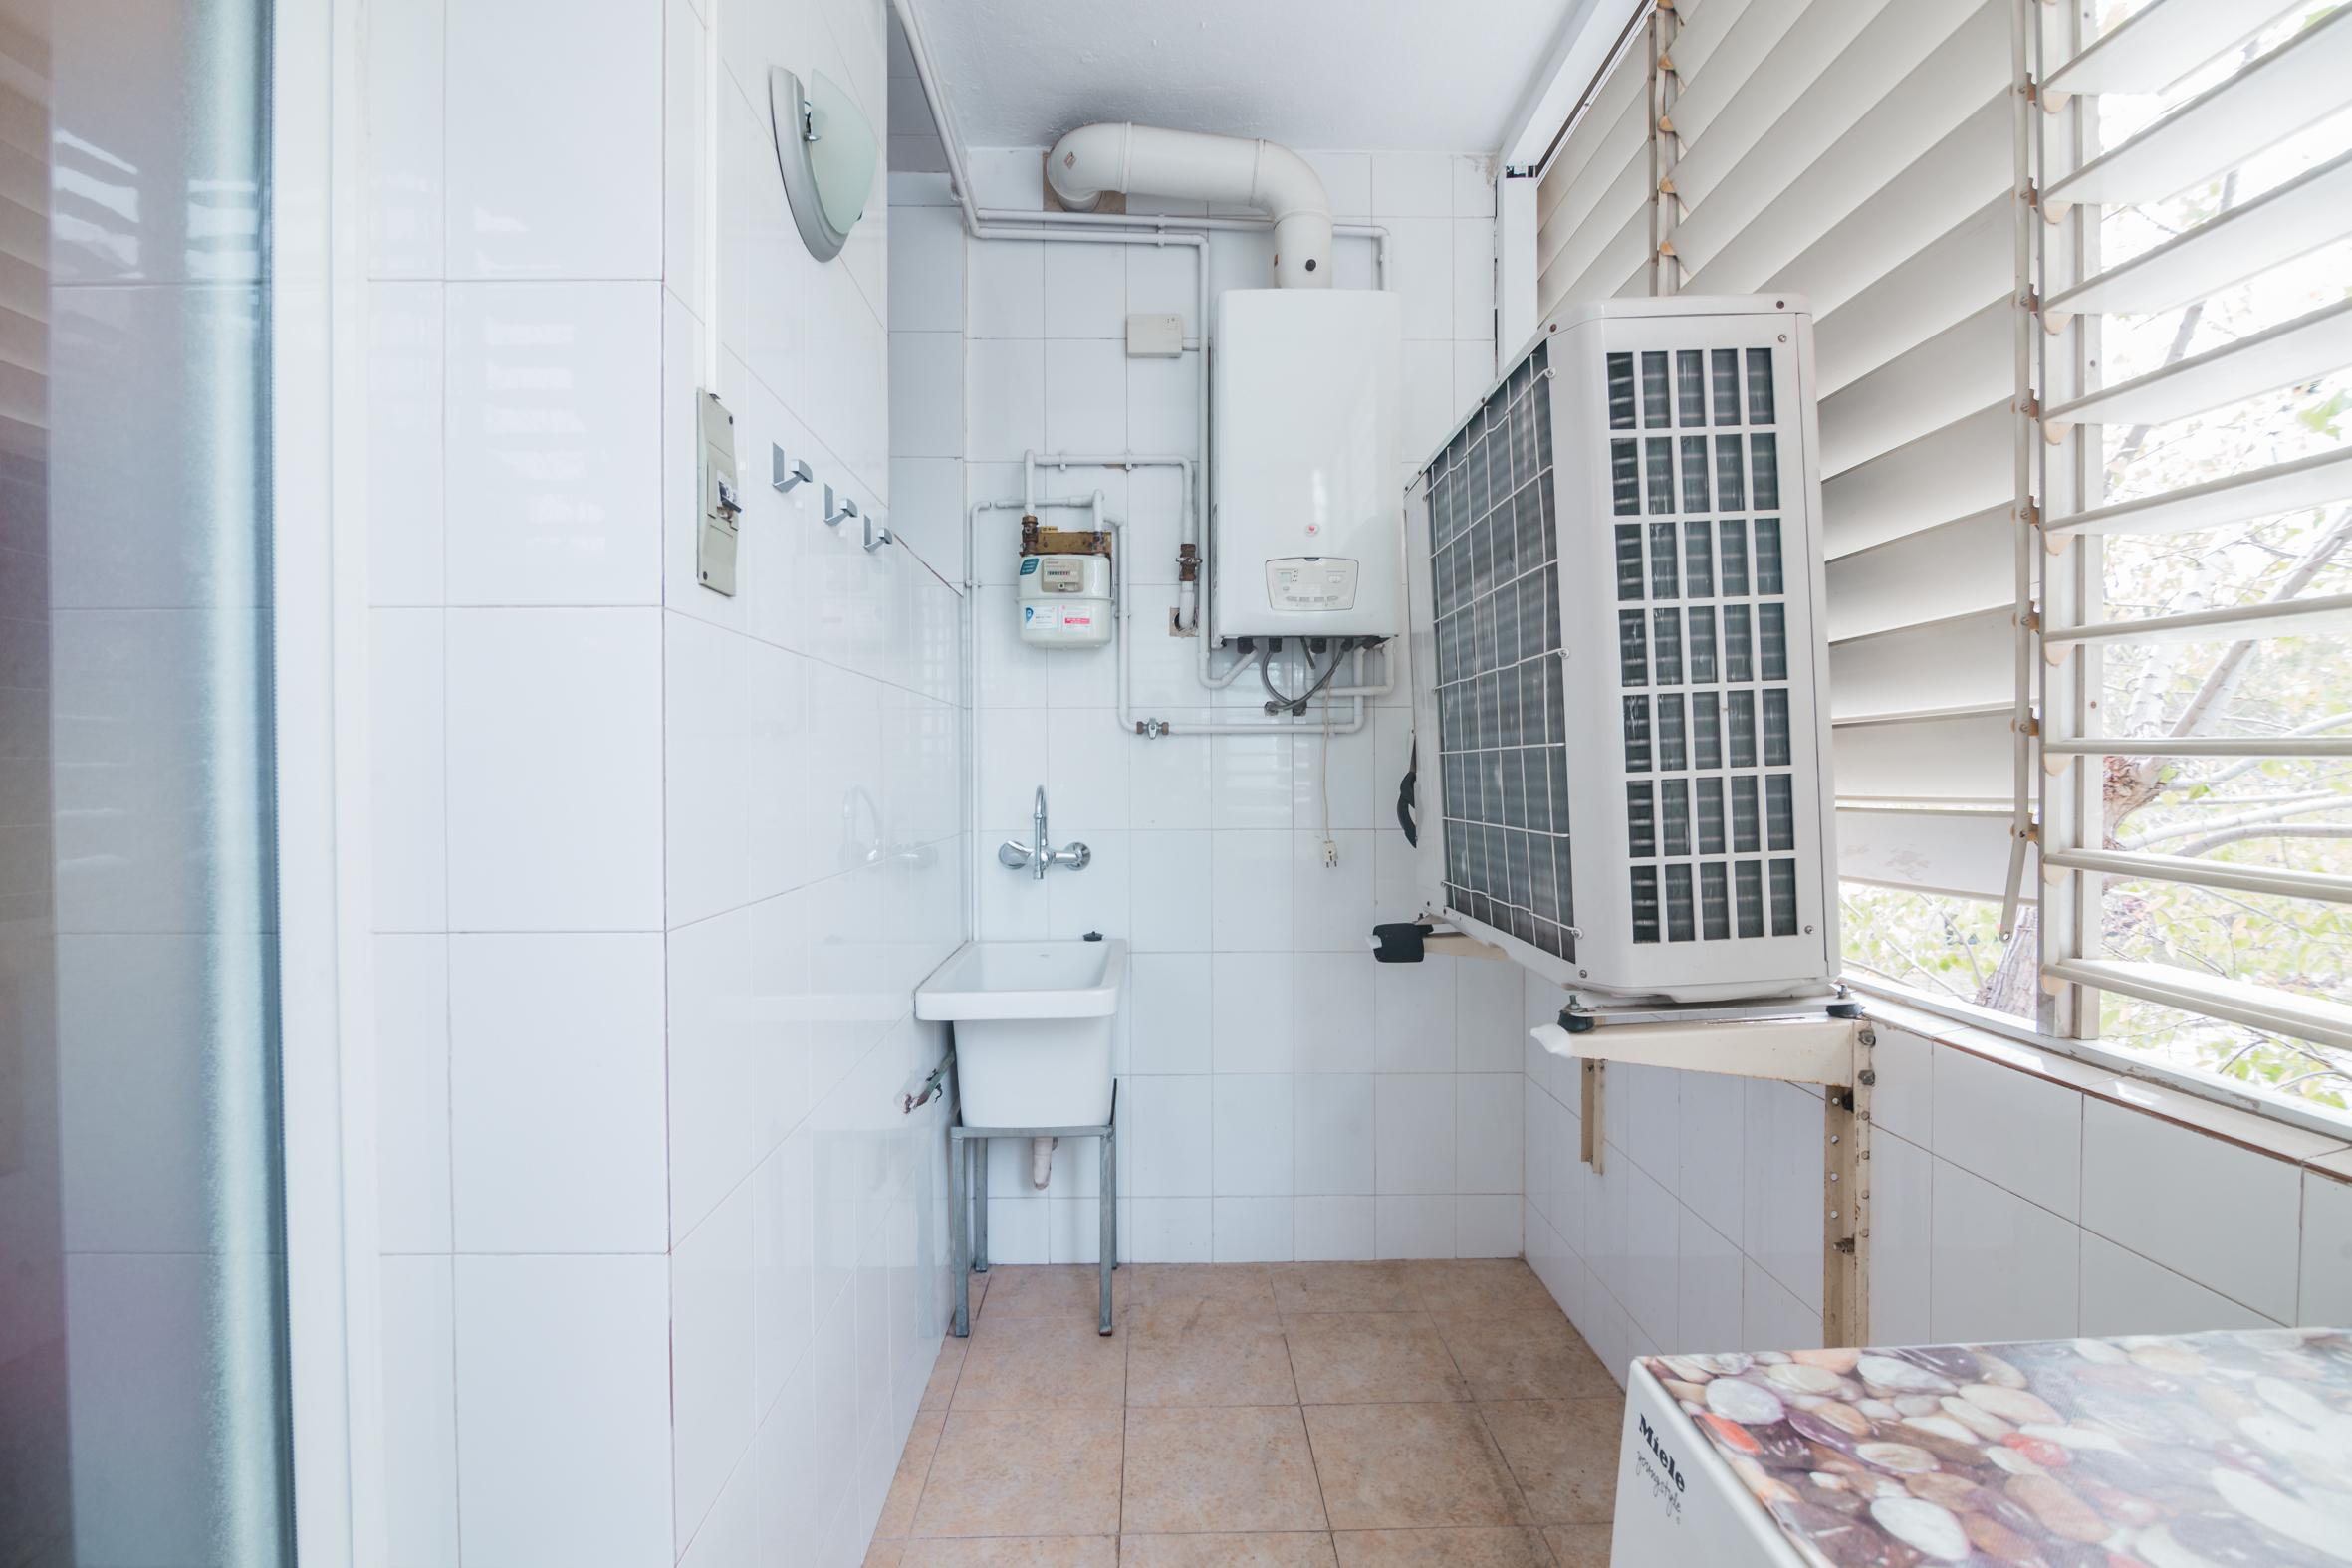 246902 Flat for sale in Les Corts, Pedralbes 29